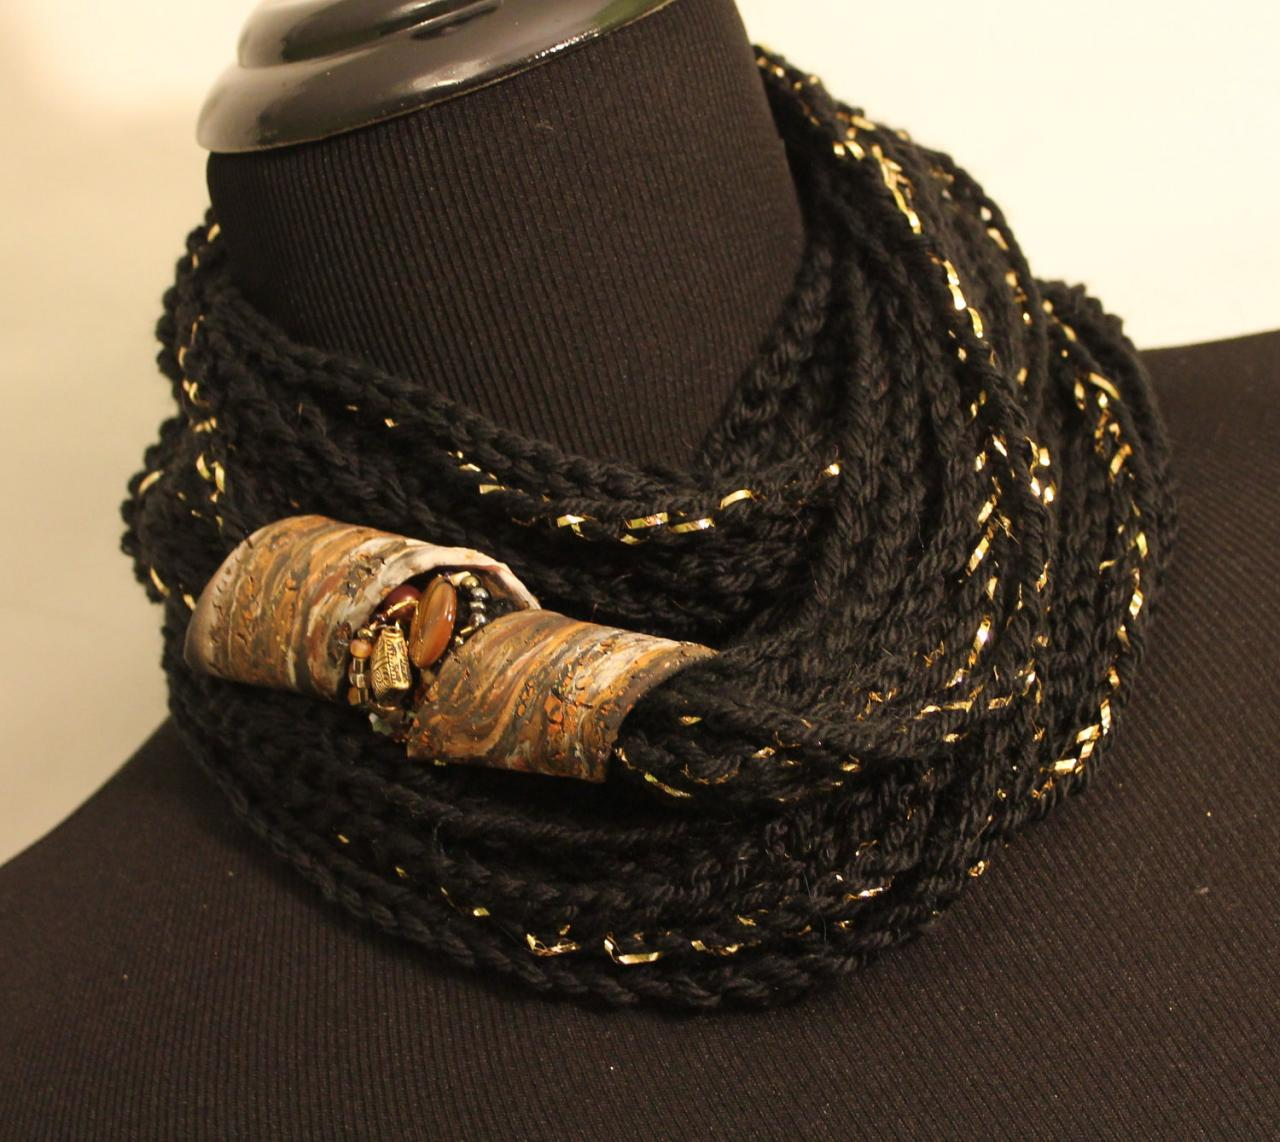 Black Gold - Womens Twisted Scarf, Marbled Clay Gold Embossed Clasp, 54', 24' or 18' Neck Wrap